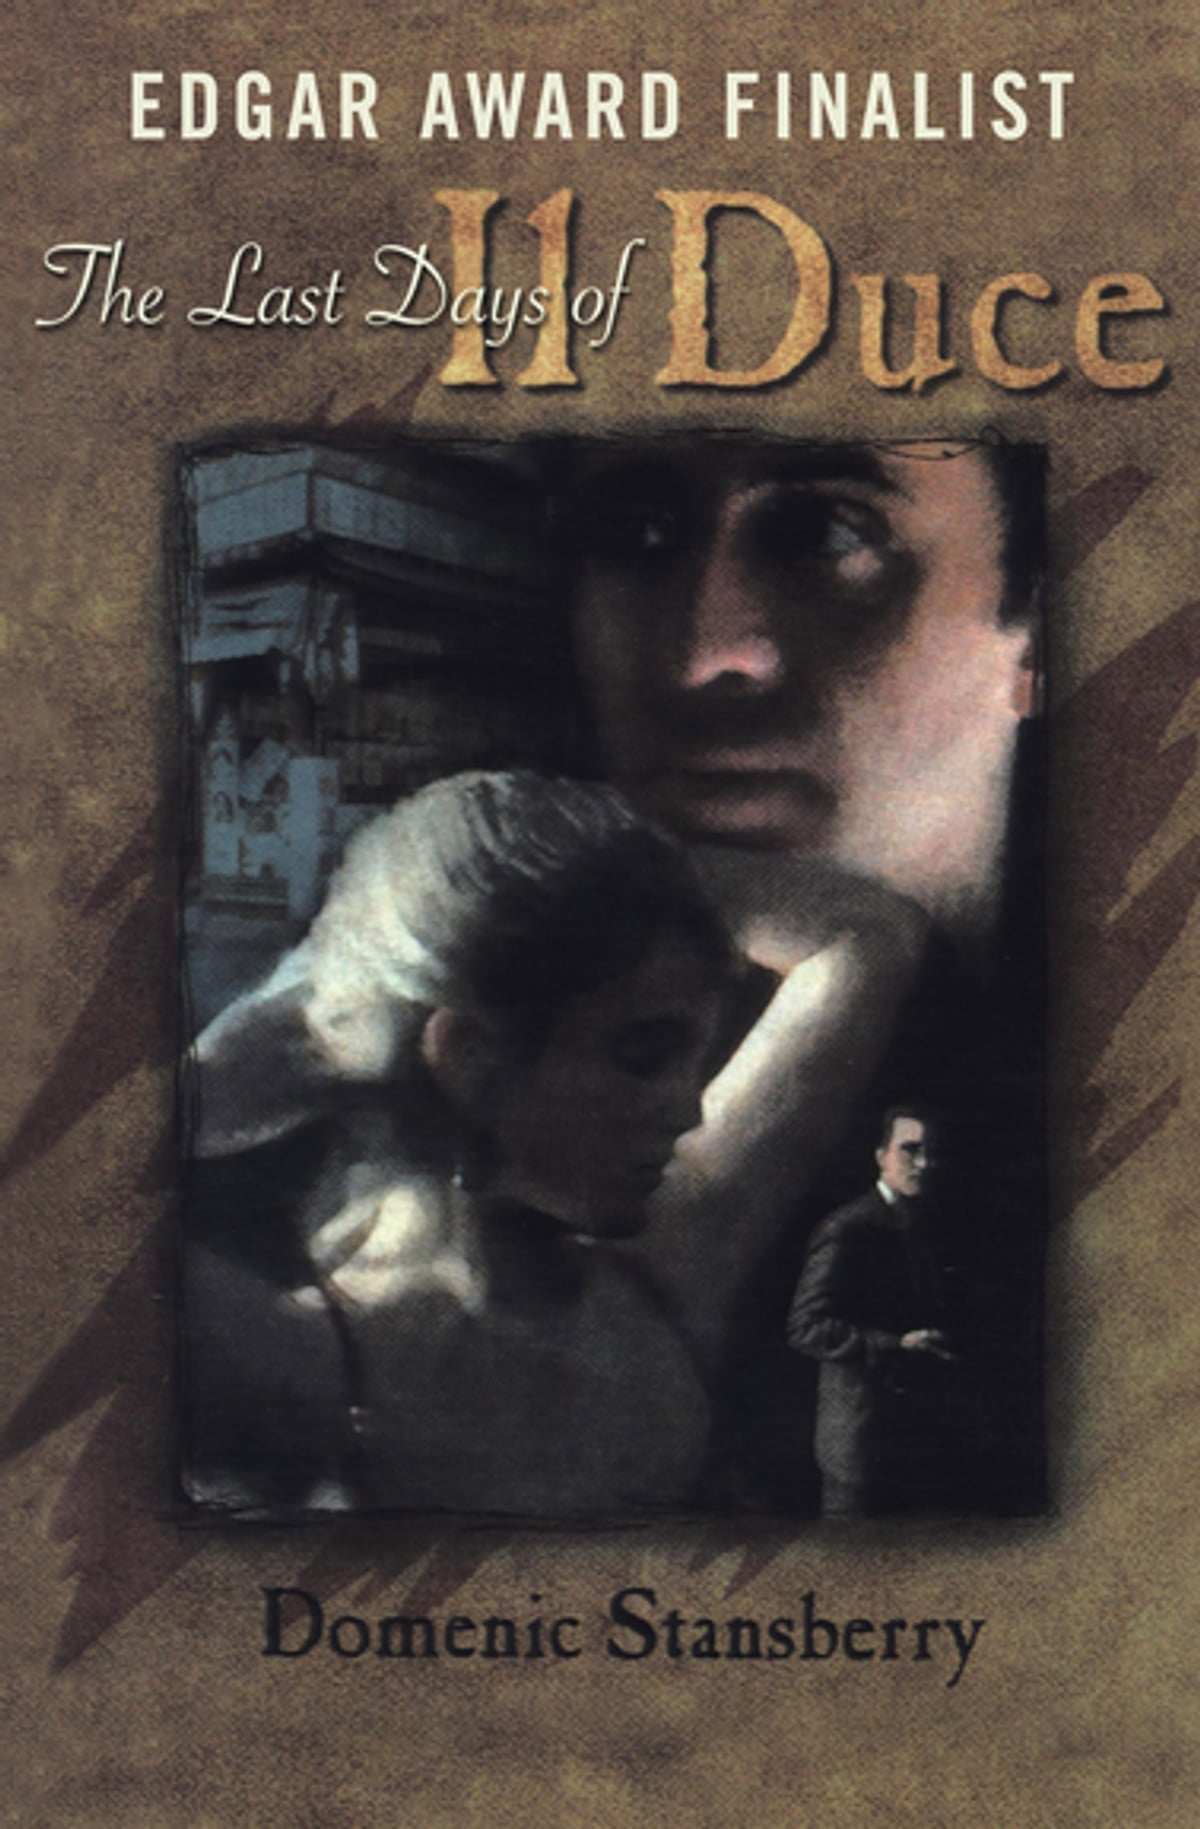 The Last Days of Il Duce eBook by Domenic Stansberry - 9781504011983 |  Rakuten Kobo